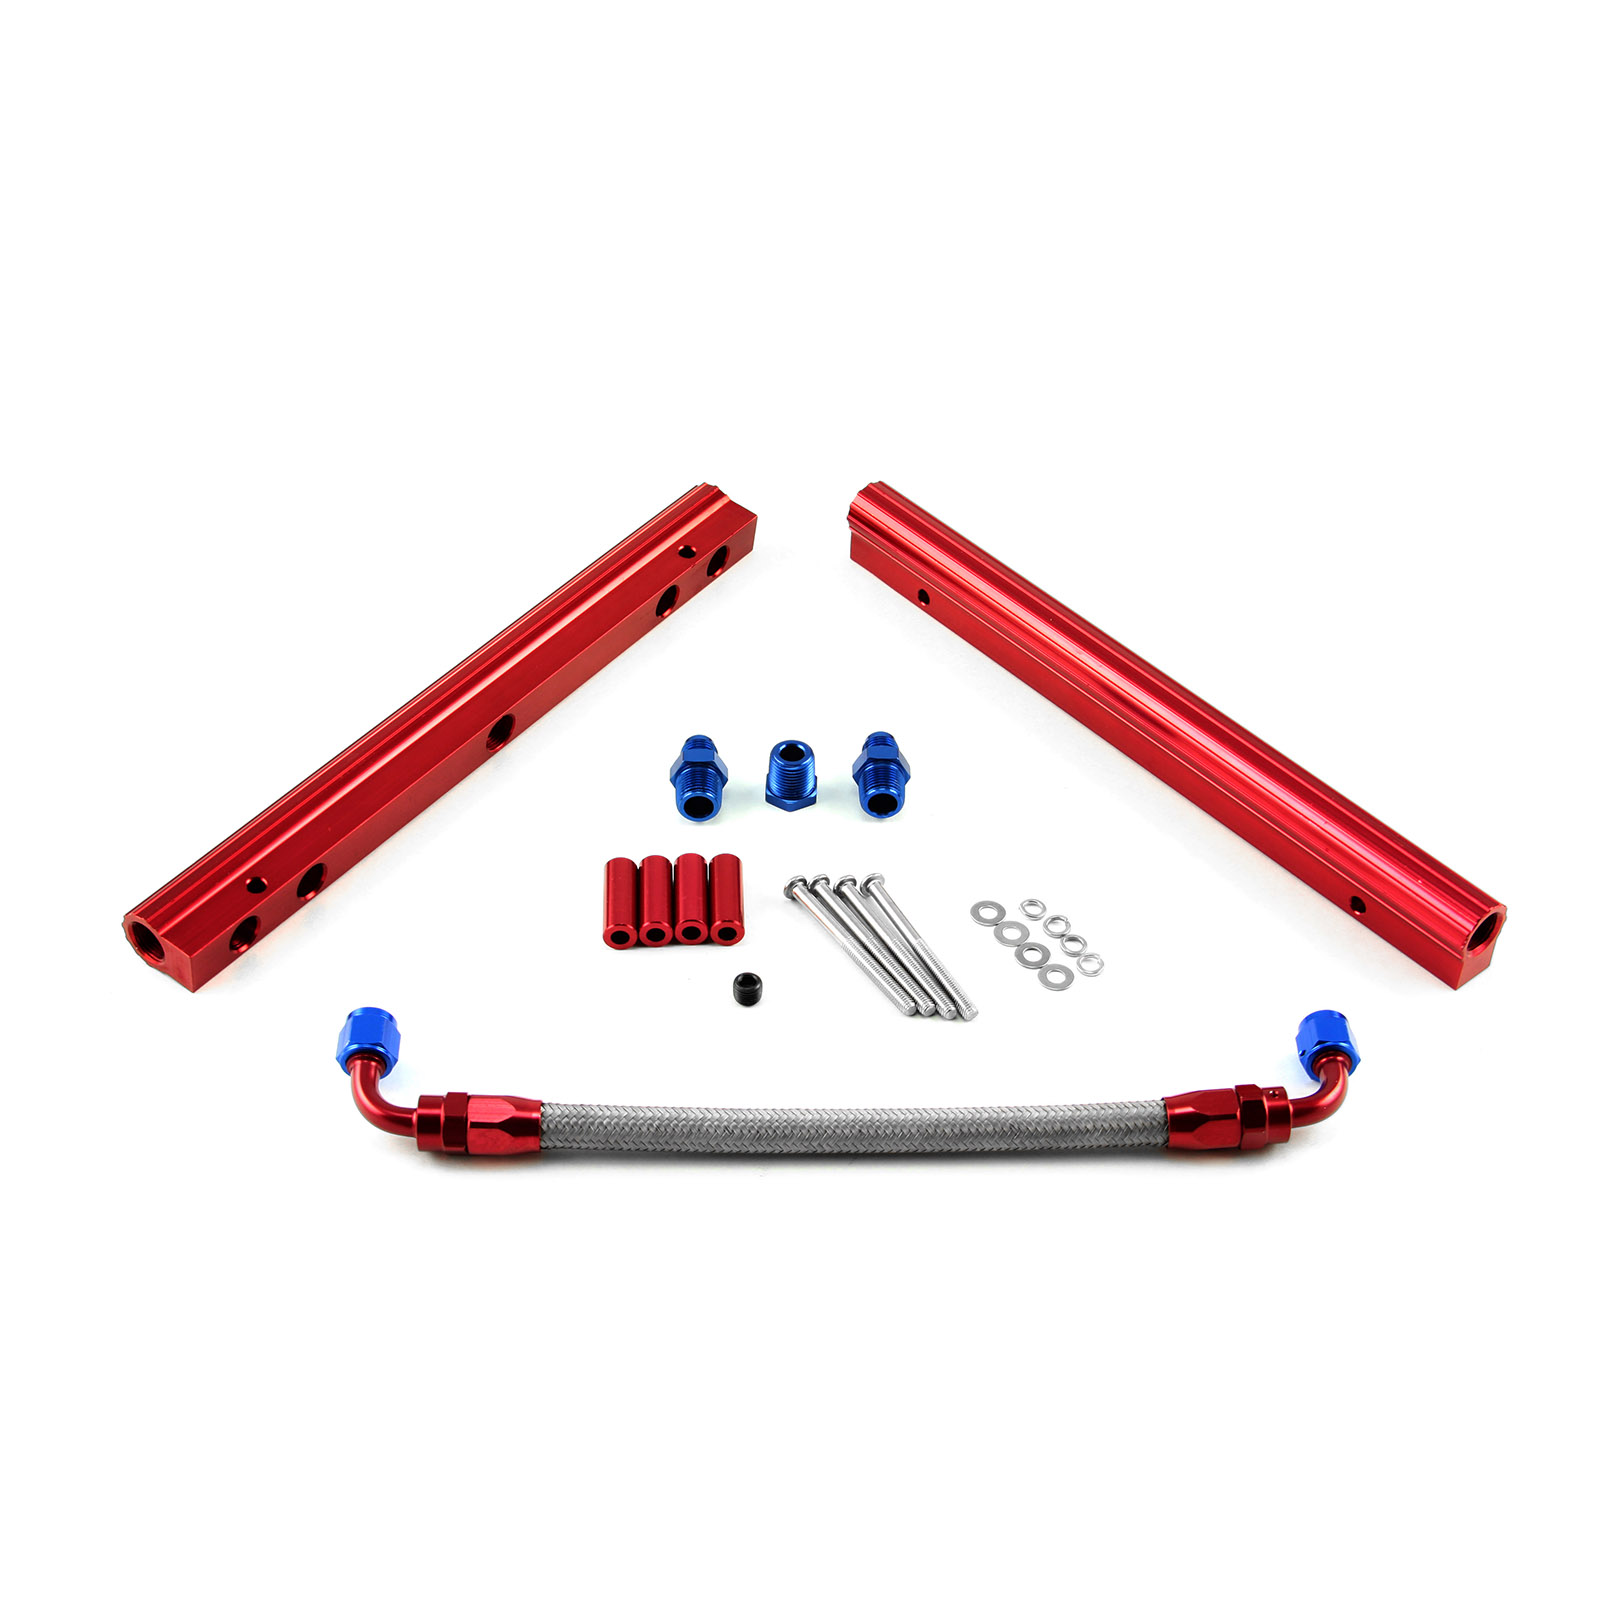 Chevy SBC 350 Billet Aluminum Fuel Injector Rail Kit